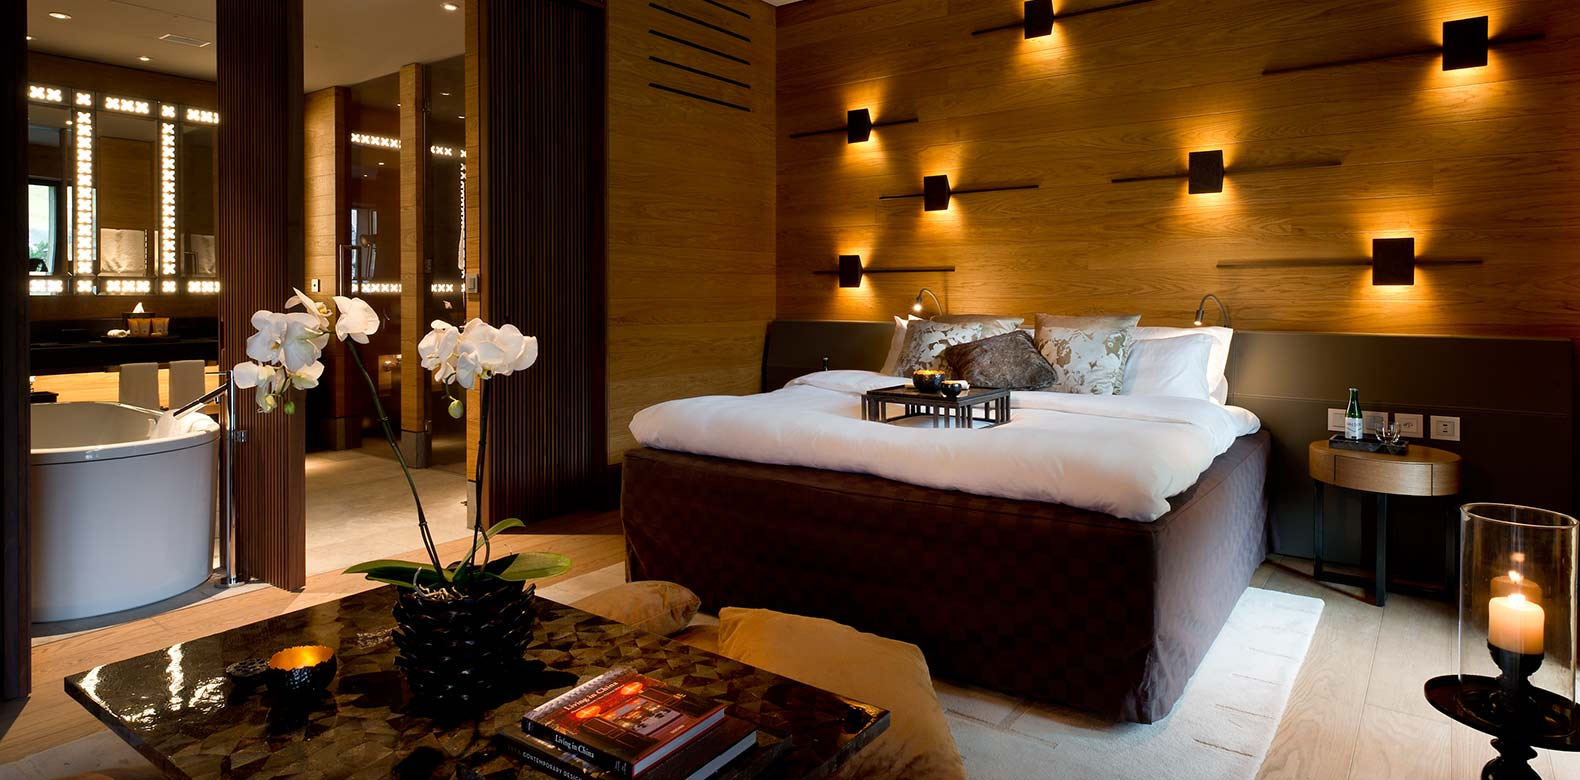 DLW Luxury Wellness Hotels Hotelreservation Spa Treatment Hotel Reservation For Resorts 5 Star